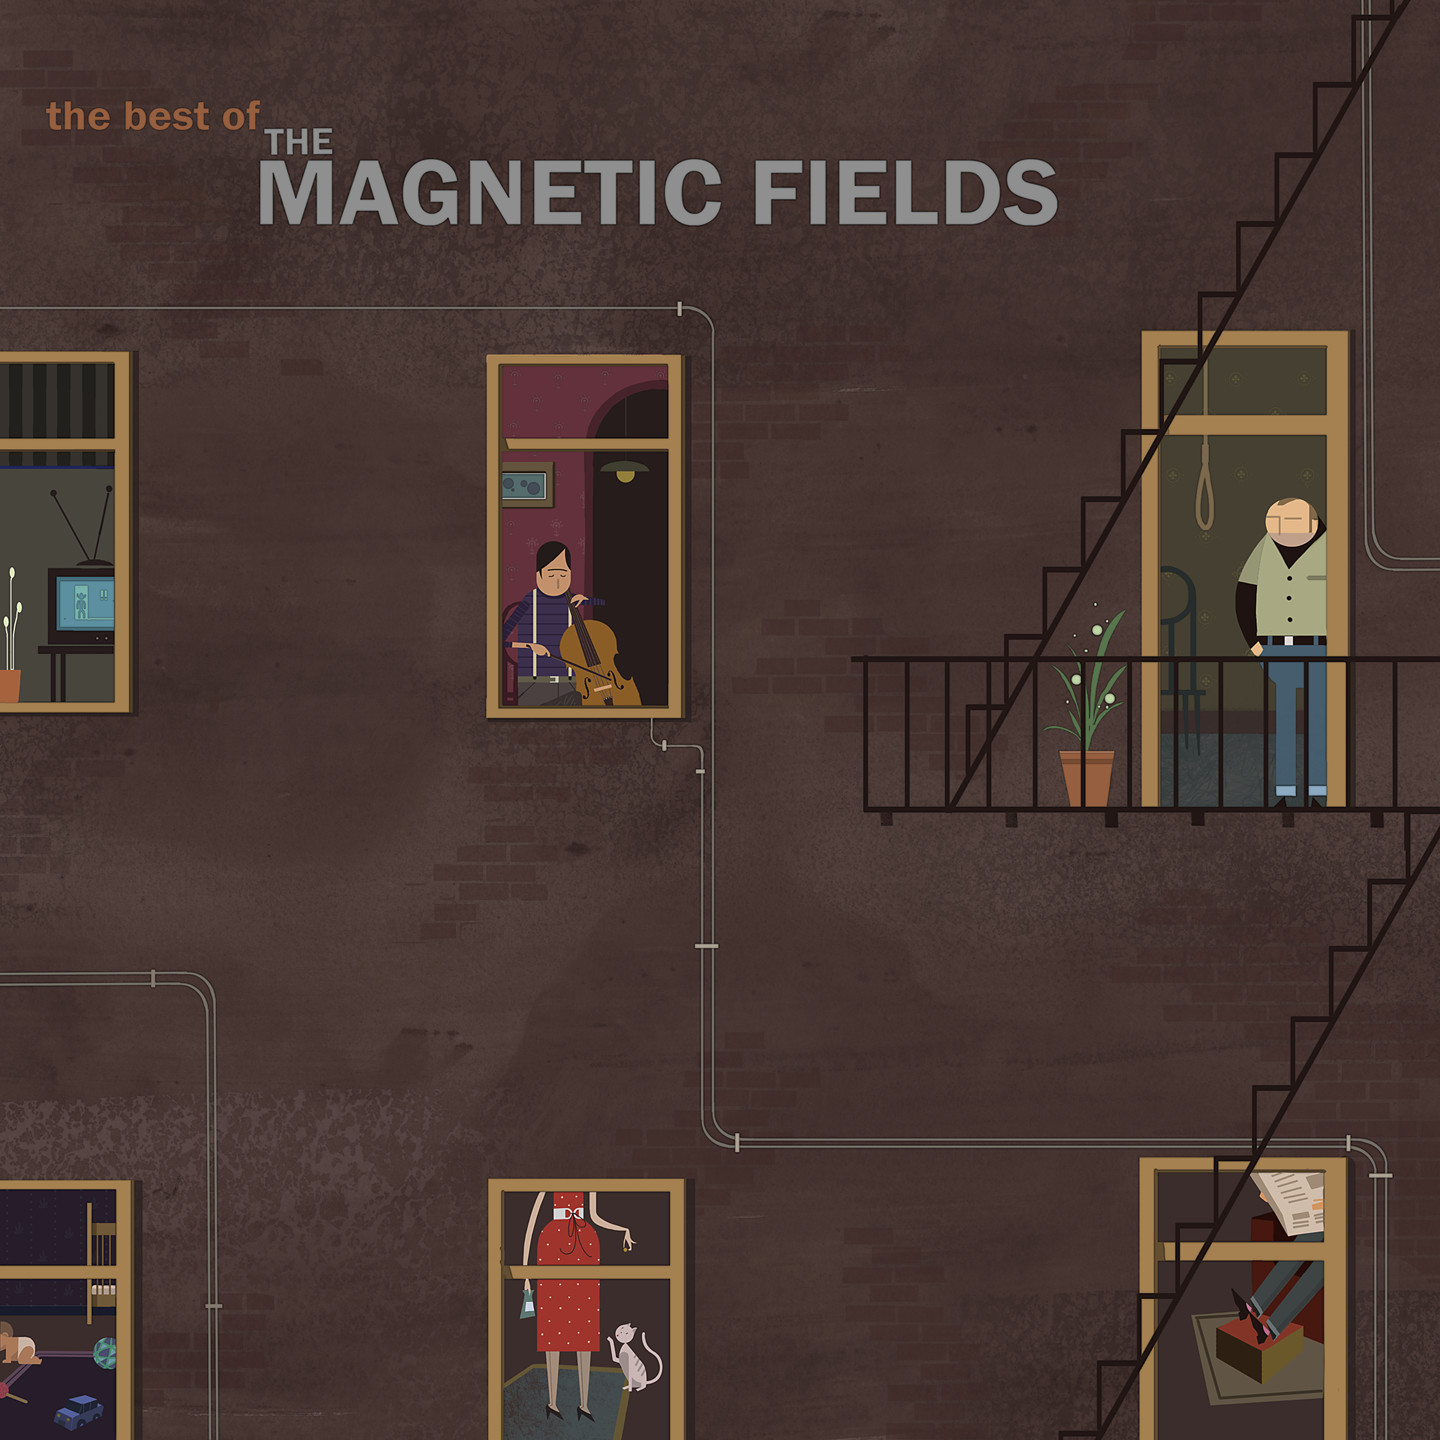 Best of the Magnetic Fields Album cover